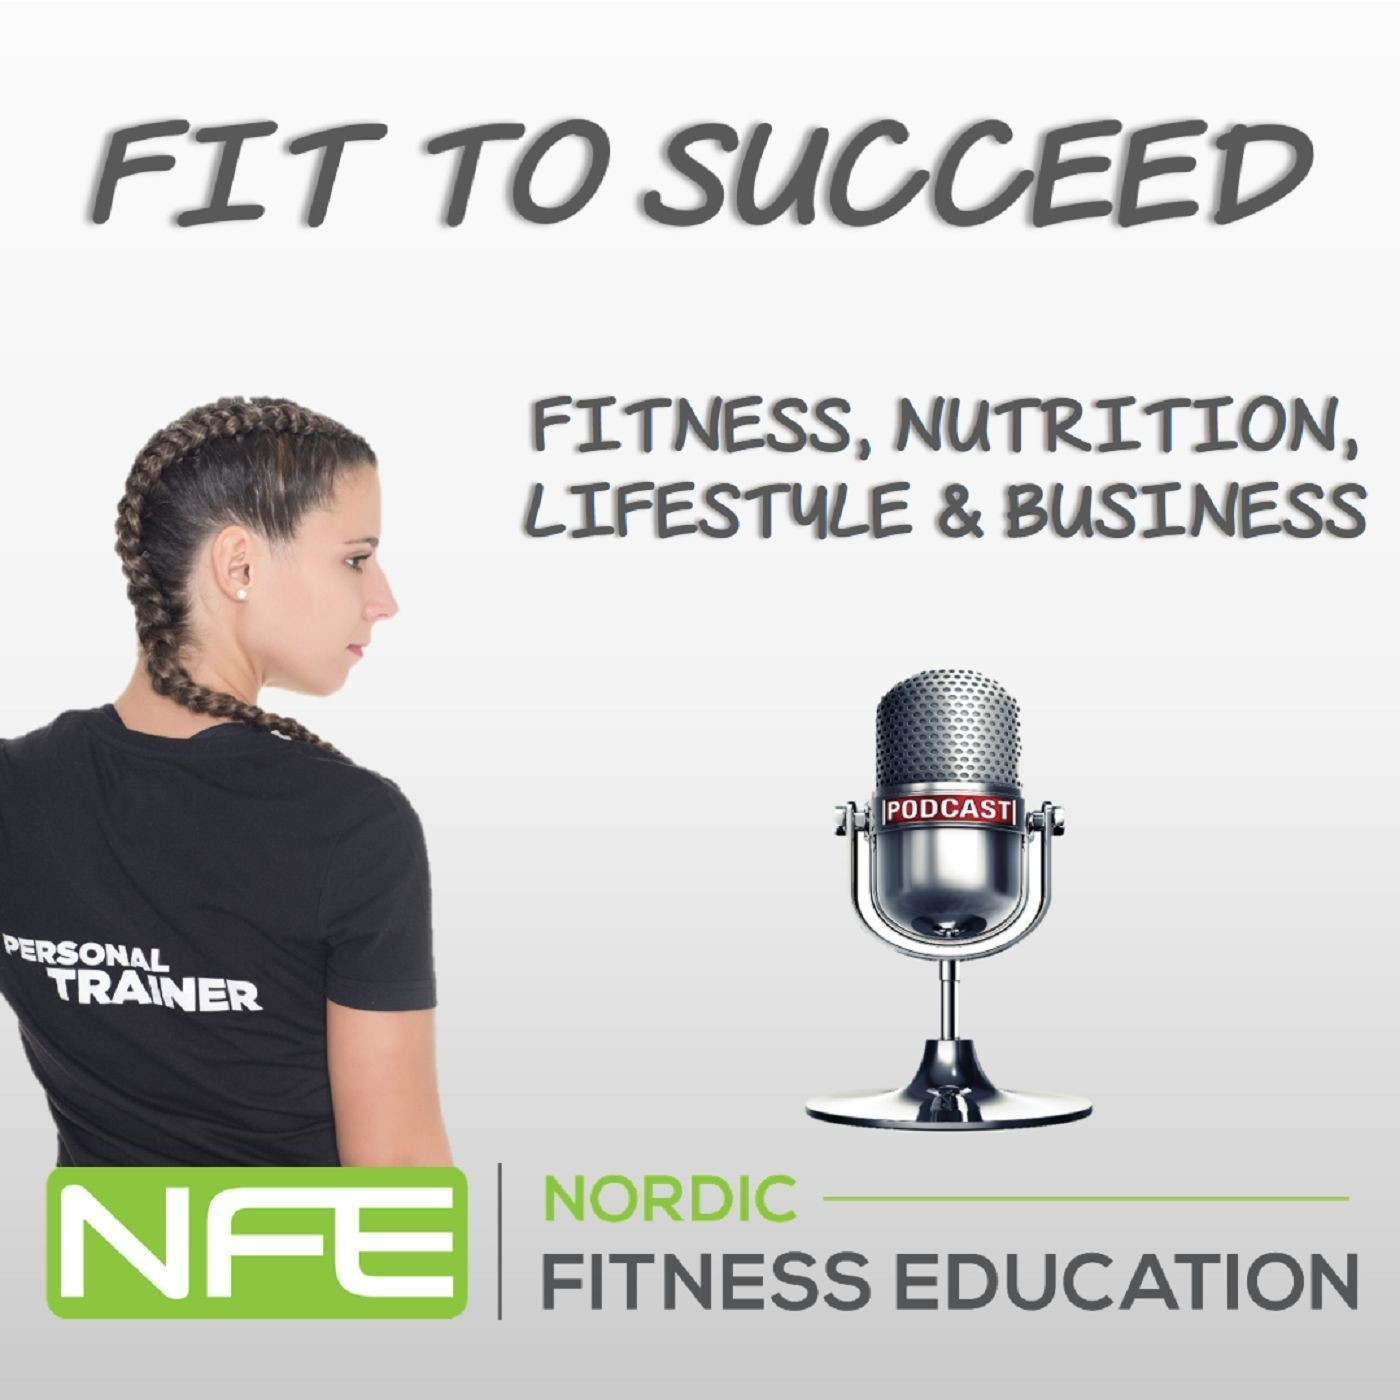 Nutrition coaching is an art - Episode 37 with Ben Coomber